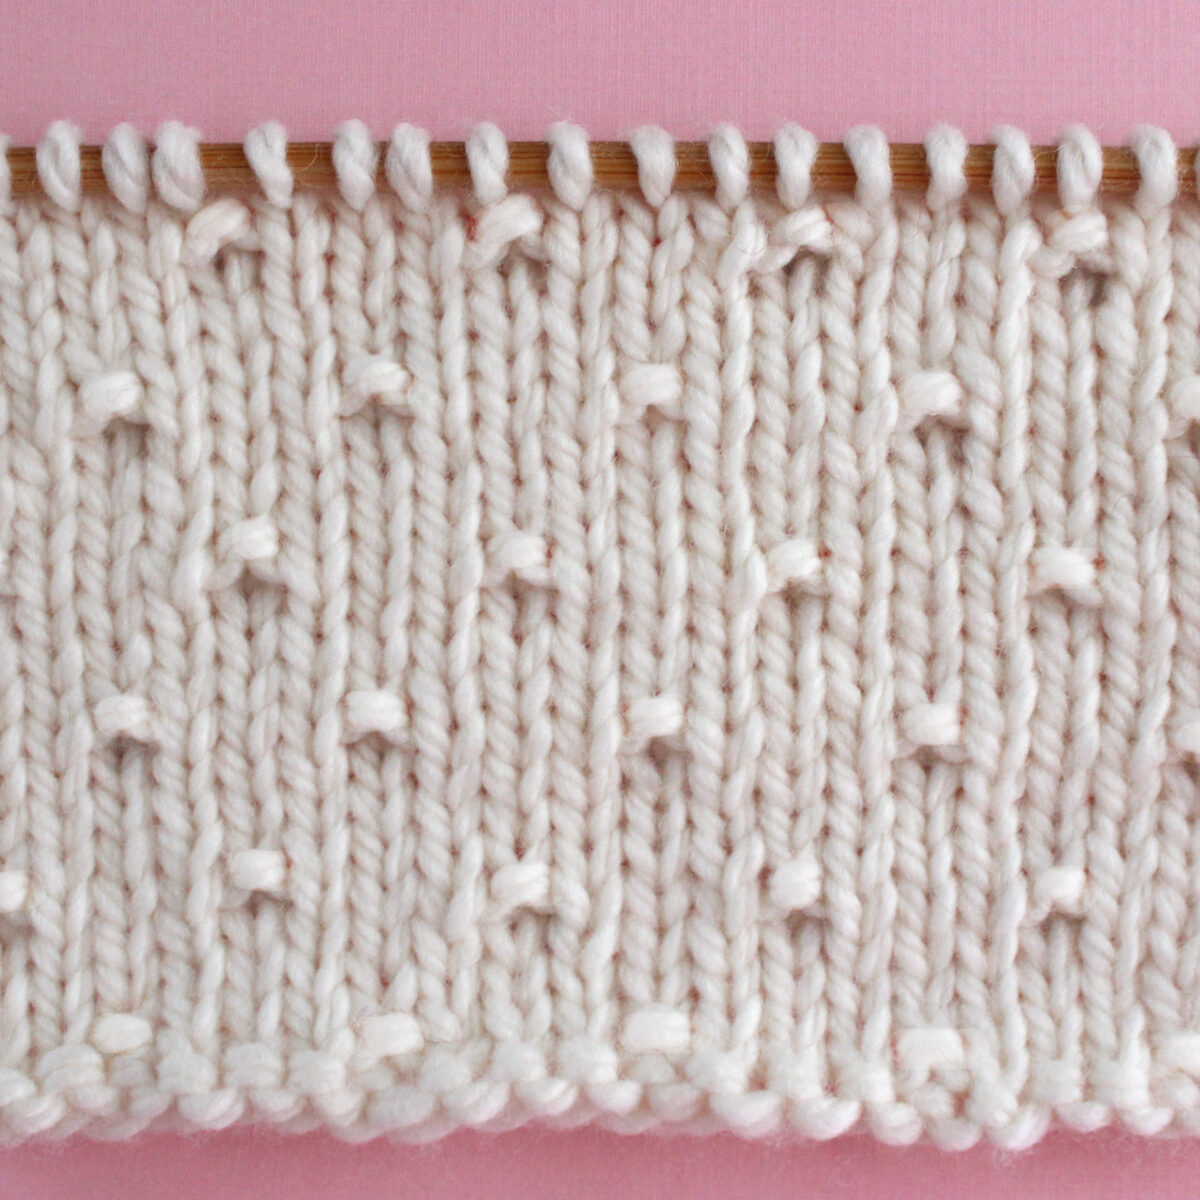 Simple Seed Knit Stitch Pattern in white yarn color on knitting needle.